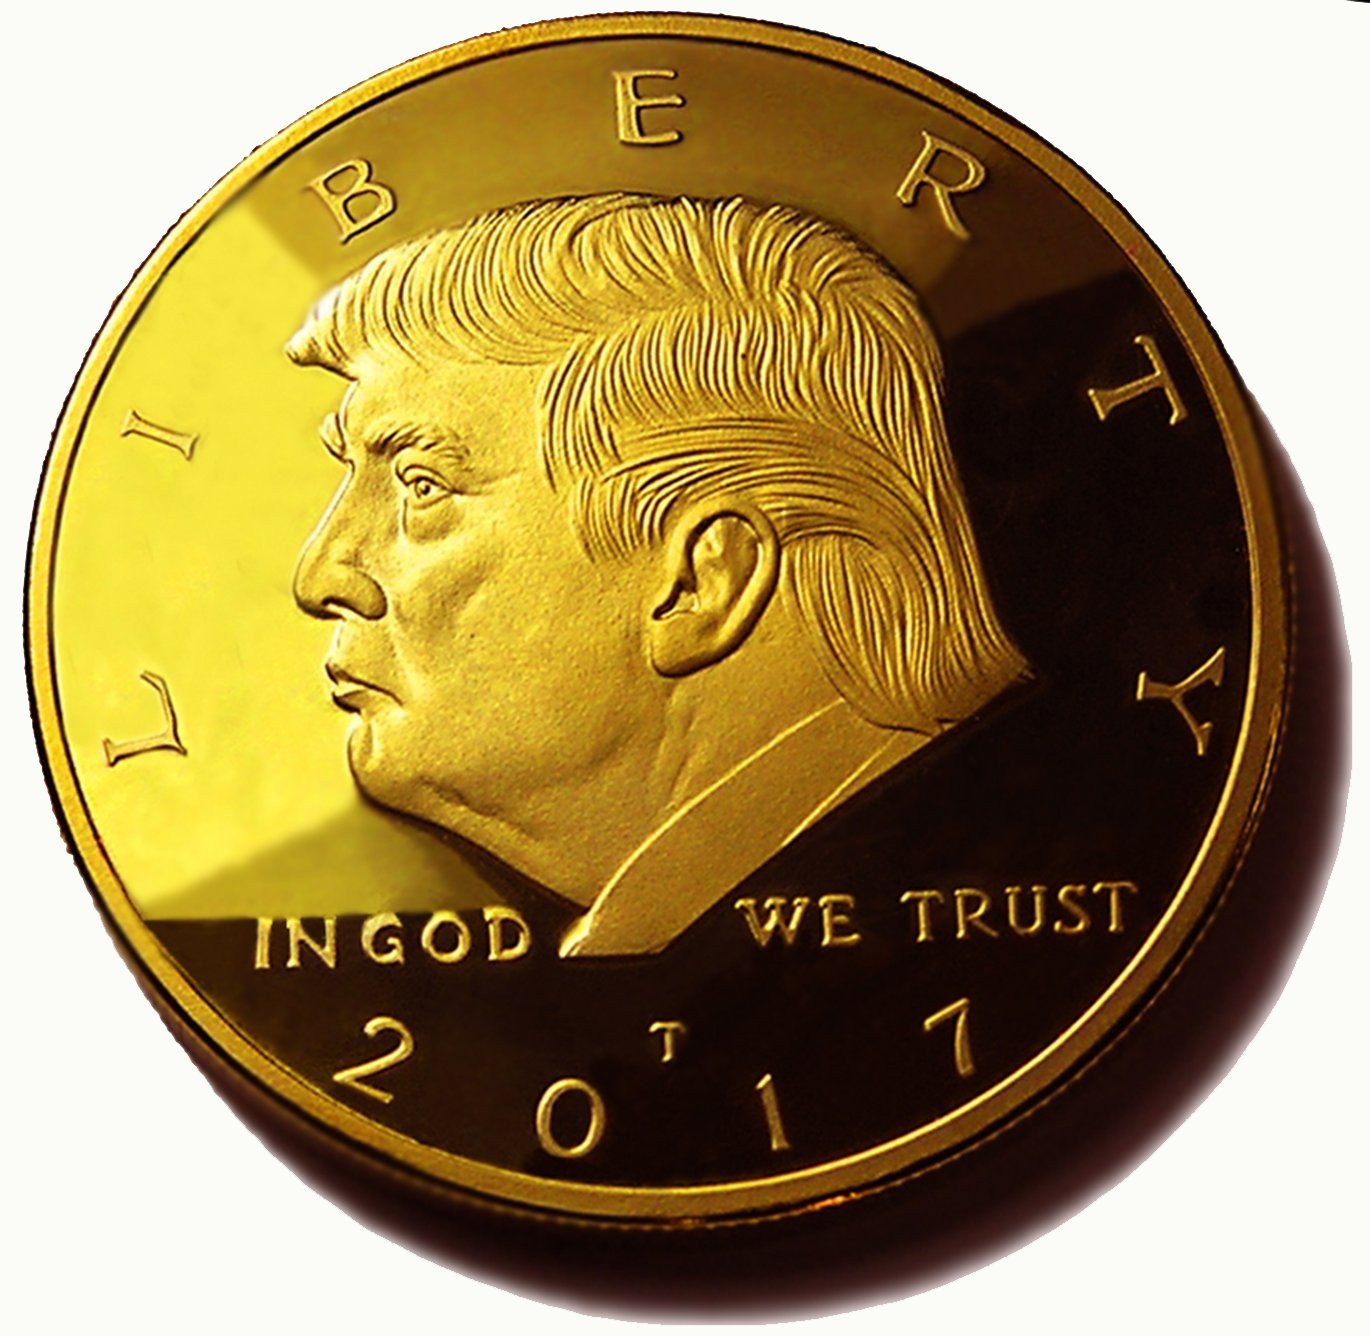 Choice Of 2017, 2018, 2019, 2020 Donald Trump Replica Gold Pieces, 45th Presidential Edition 24kt Gold Plated Medallion & Display Case ETradewinds